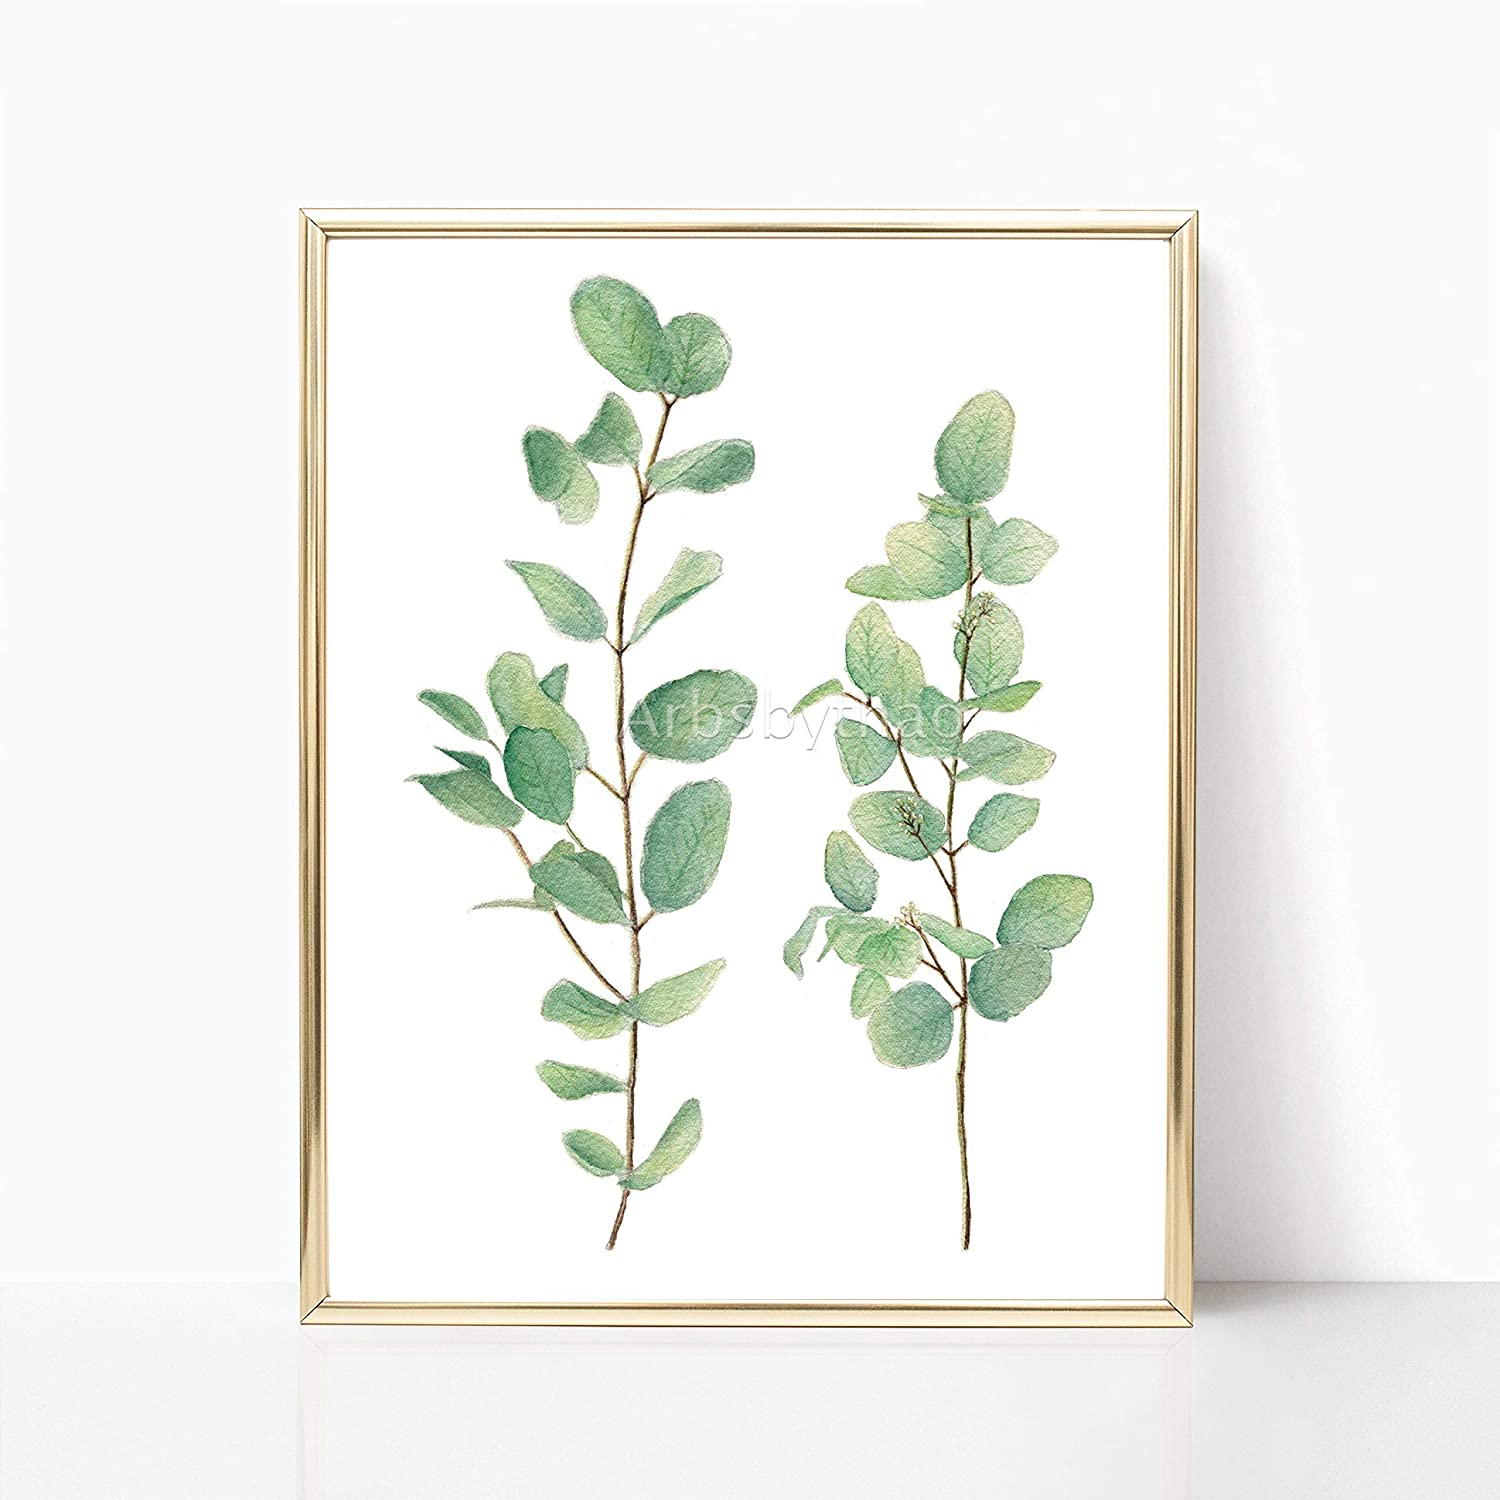 Silver Dollar Eucalyptus Leaves Print 8x10 or 11x14 Unframed Green Leaf Watercolor Painting Illustration Wall Decor Living Room Plant Decoration Art Decor